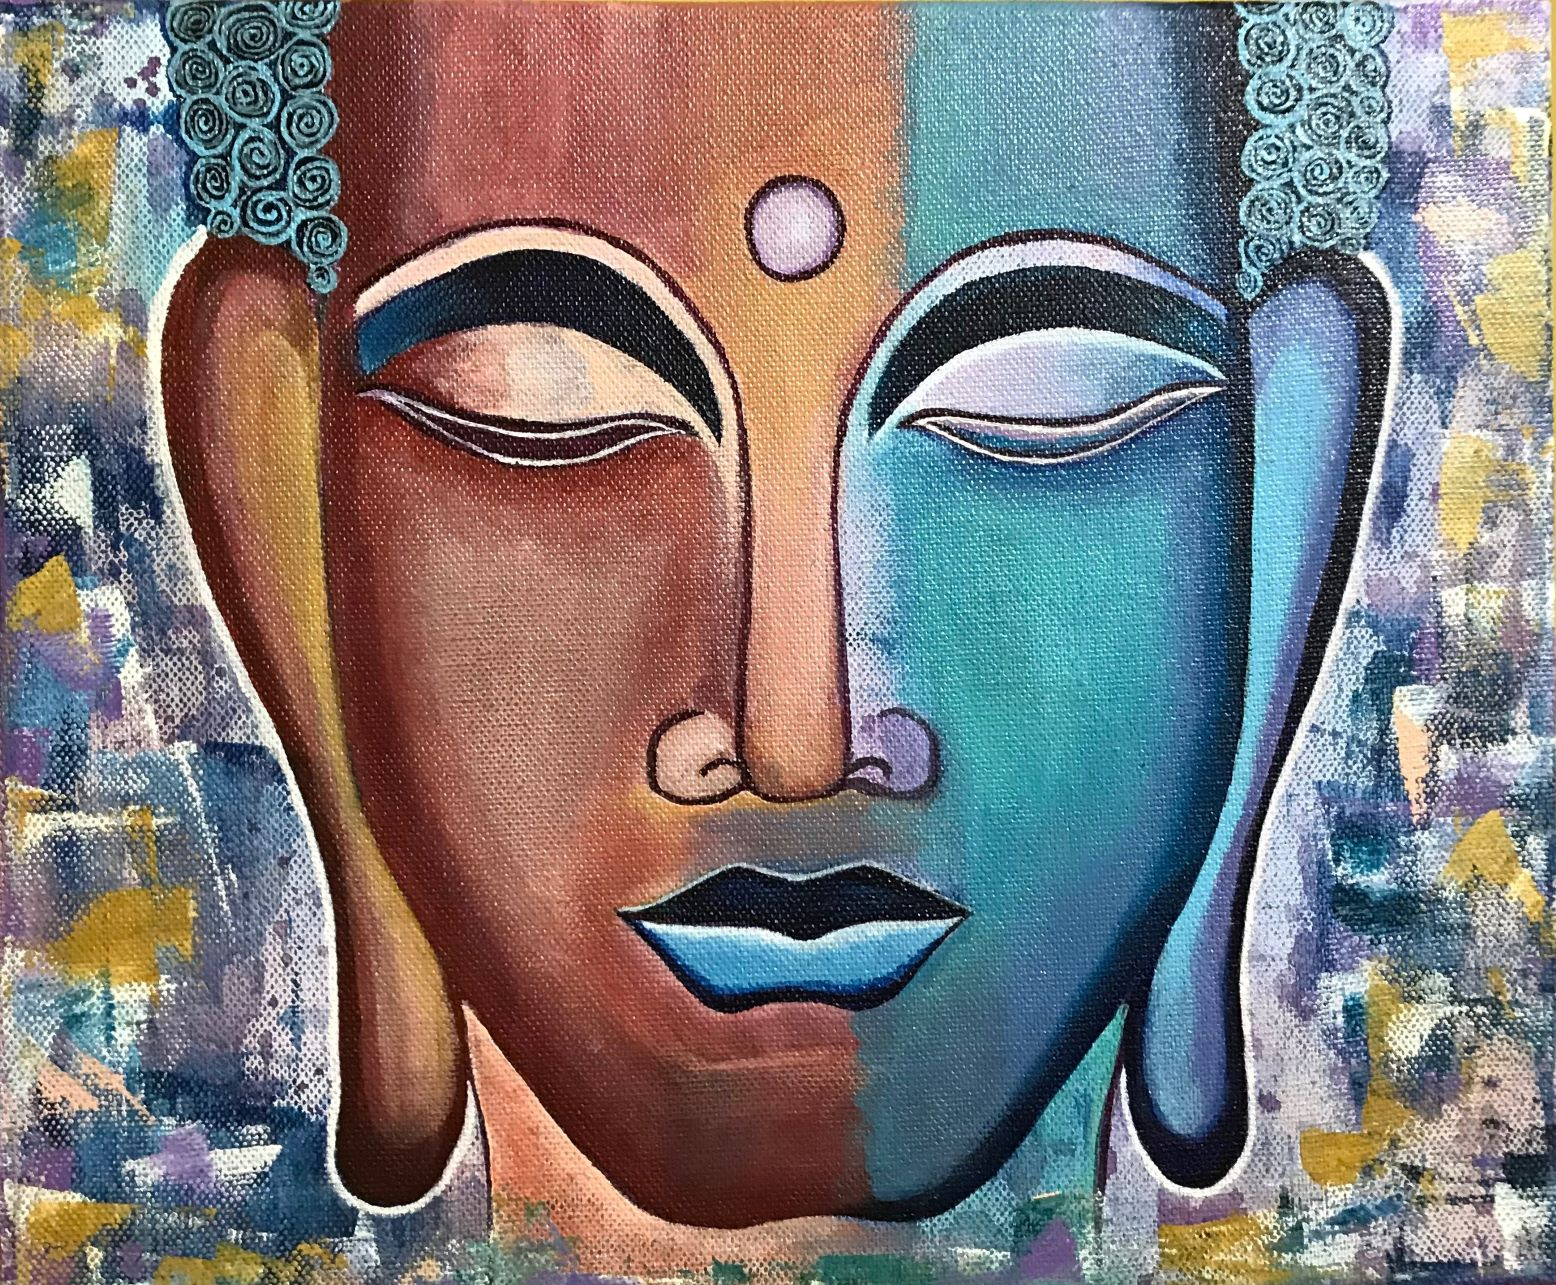 Buddha Acrylic Canvas Painting